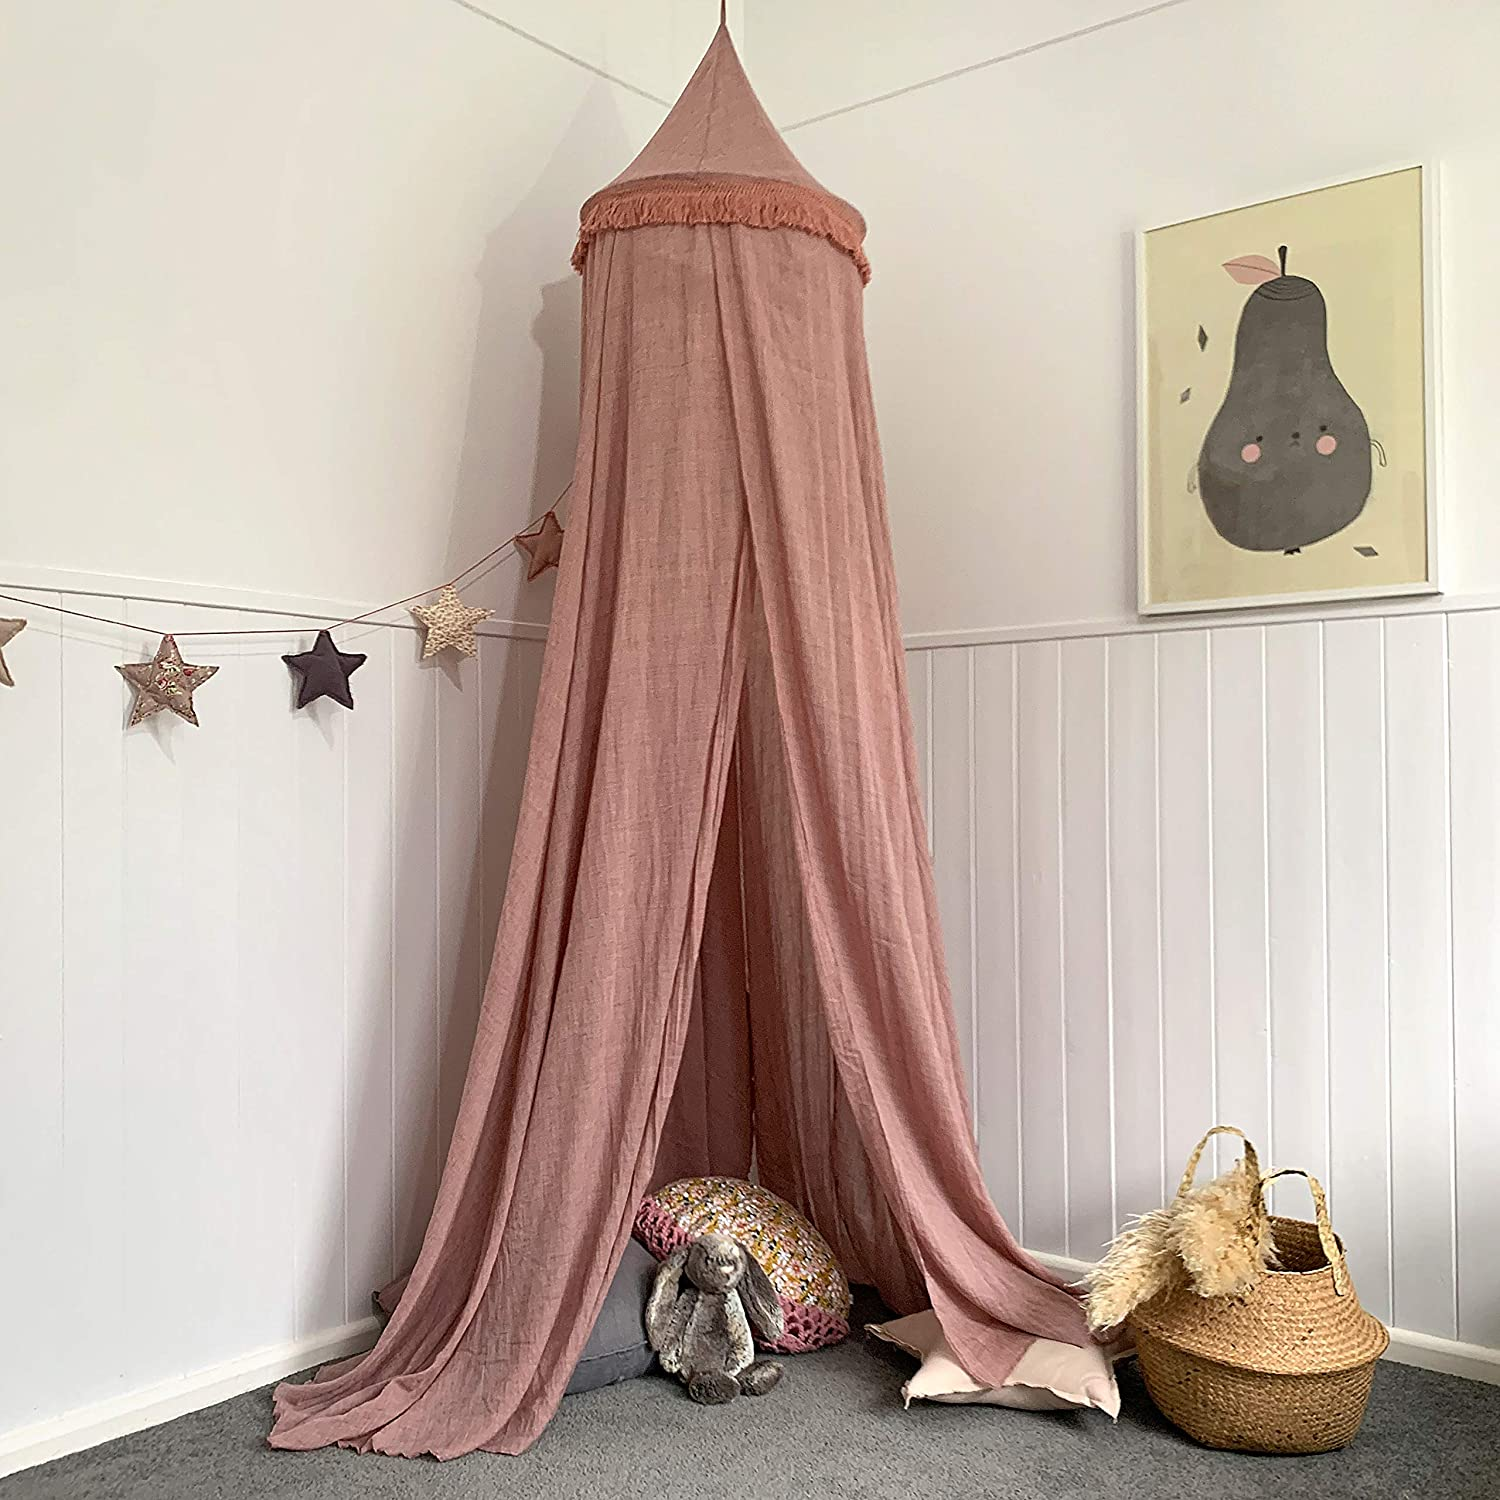 Zeke and Zoey Hanging Dusty Dirty Pink Princess Canopy for Girls Bed with Tassels - Hideaway Tent for Kids Rooms or Cribs. Nursery Decoration - Slightly Sheer Drapes for Child, Play or Reading